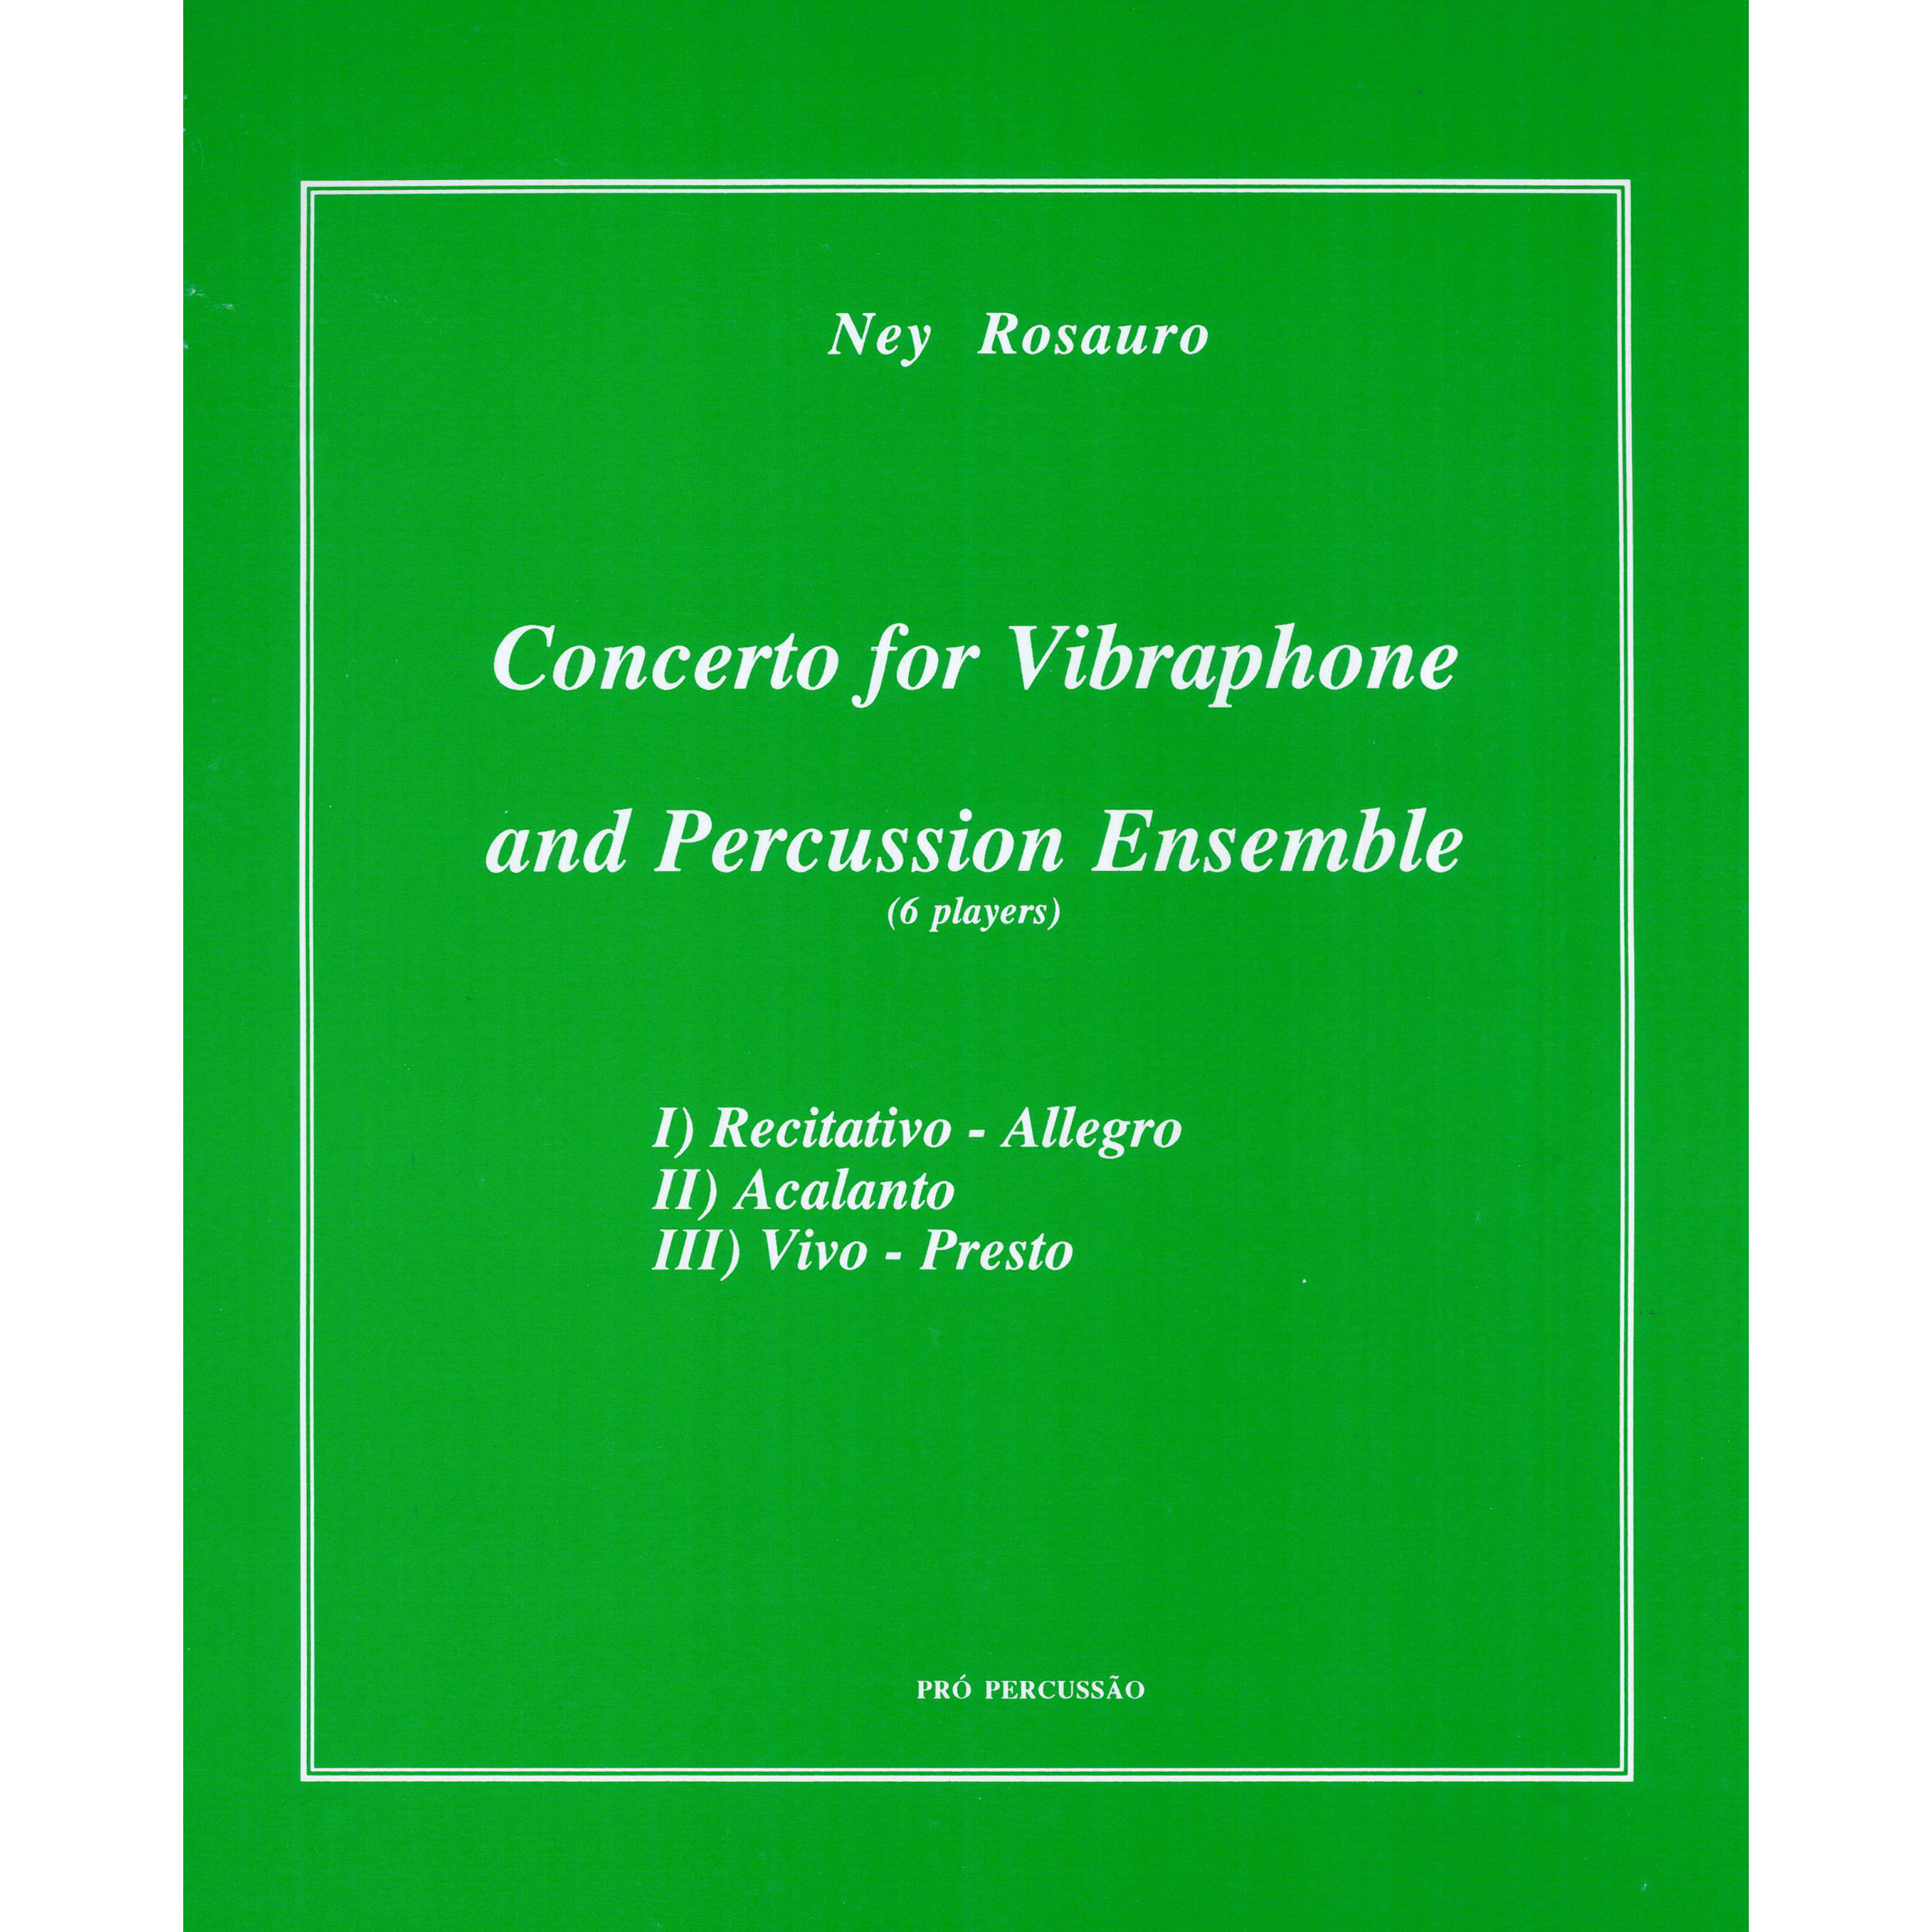 Concerto for Vibraphone and Percussion Ensemble by Ney Rosauro